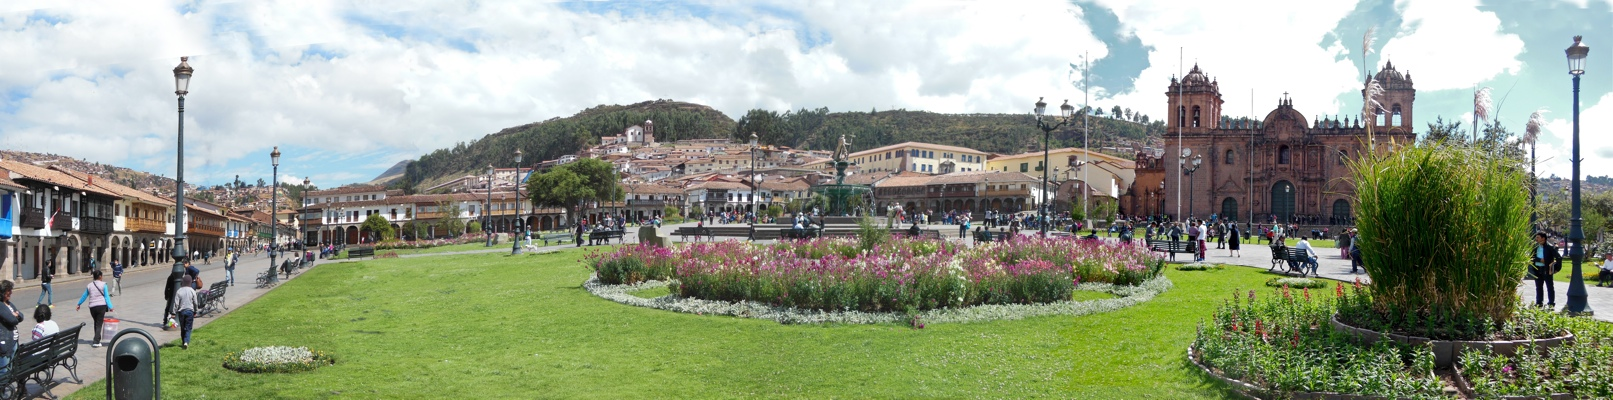 Cusco square panorama, 2015